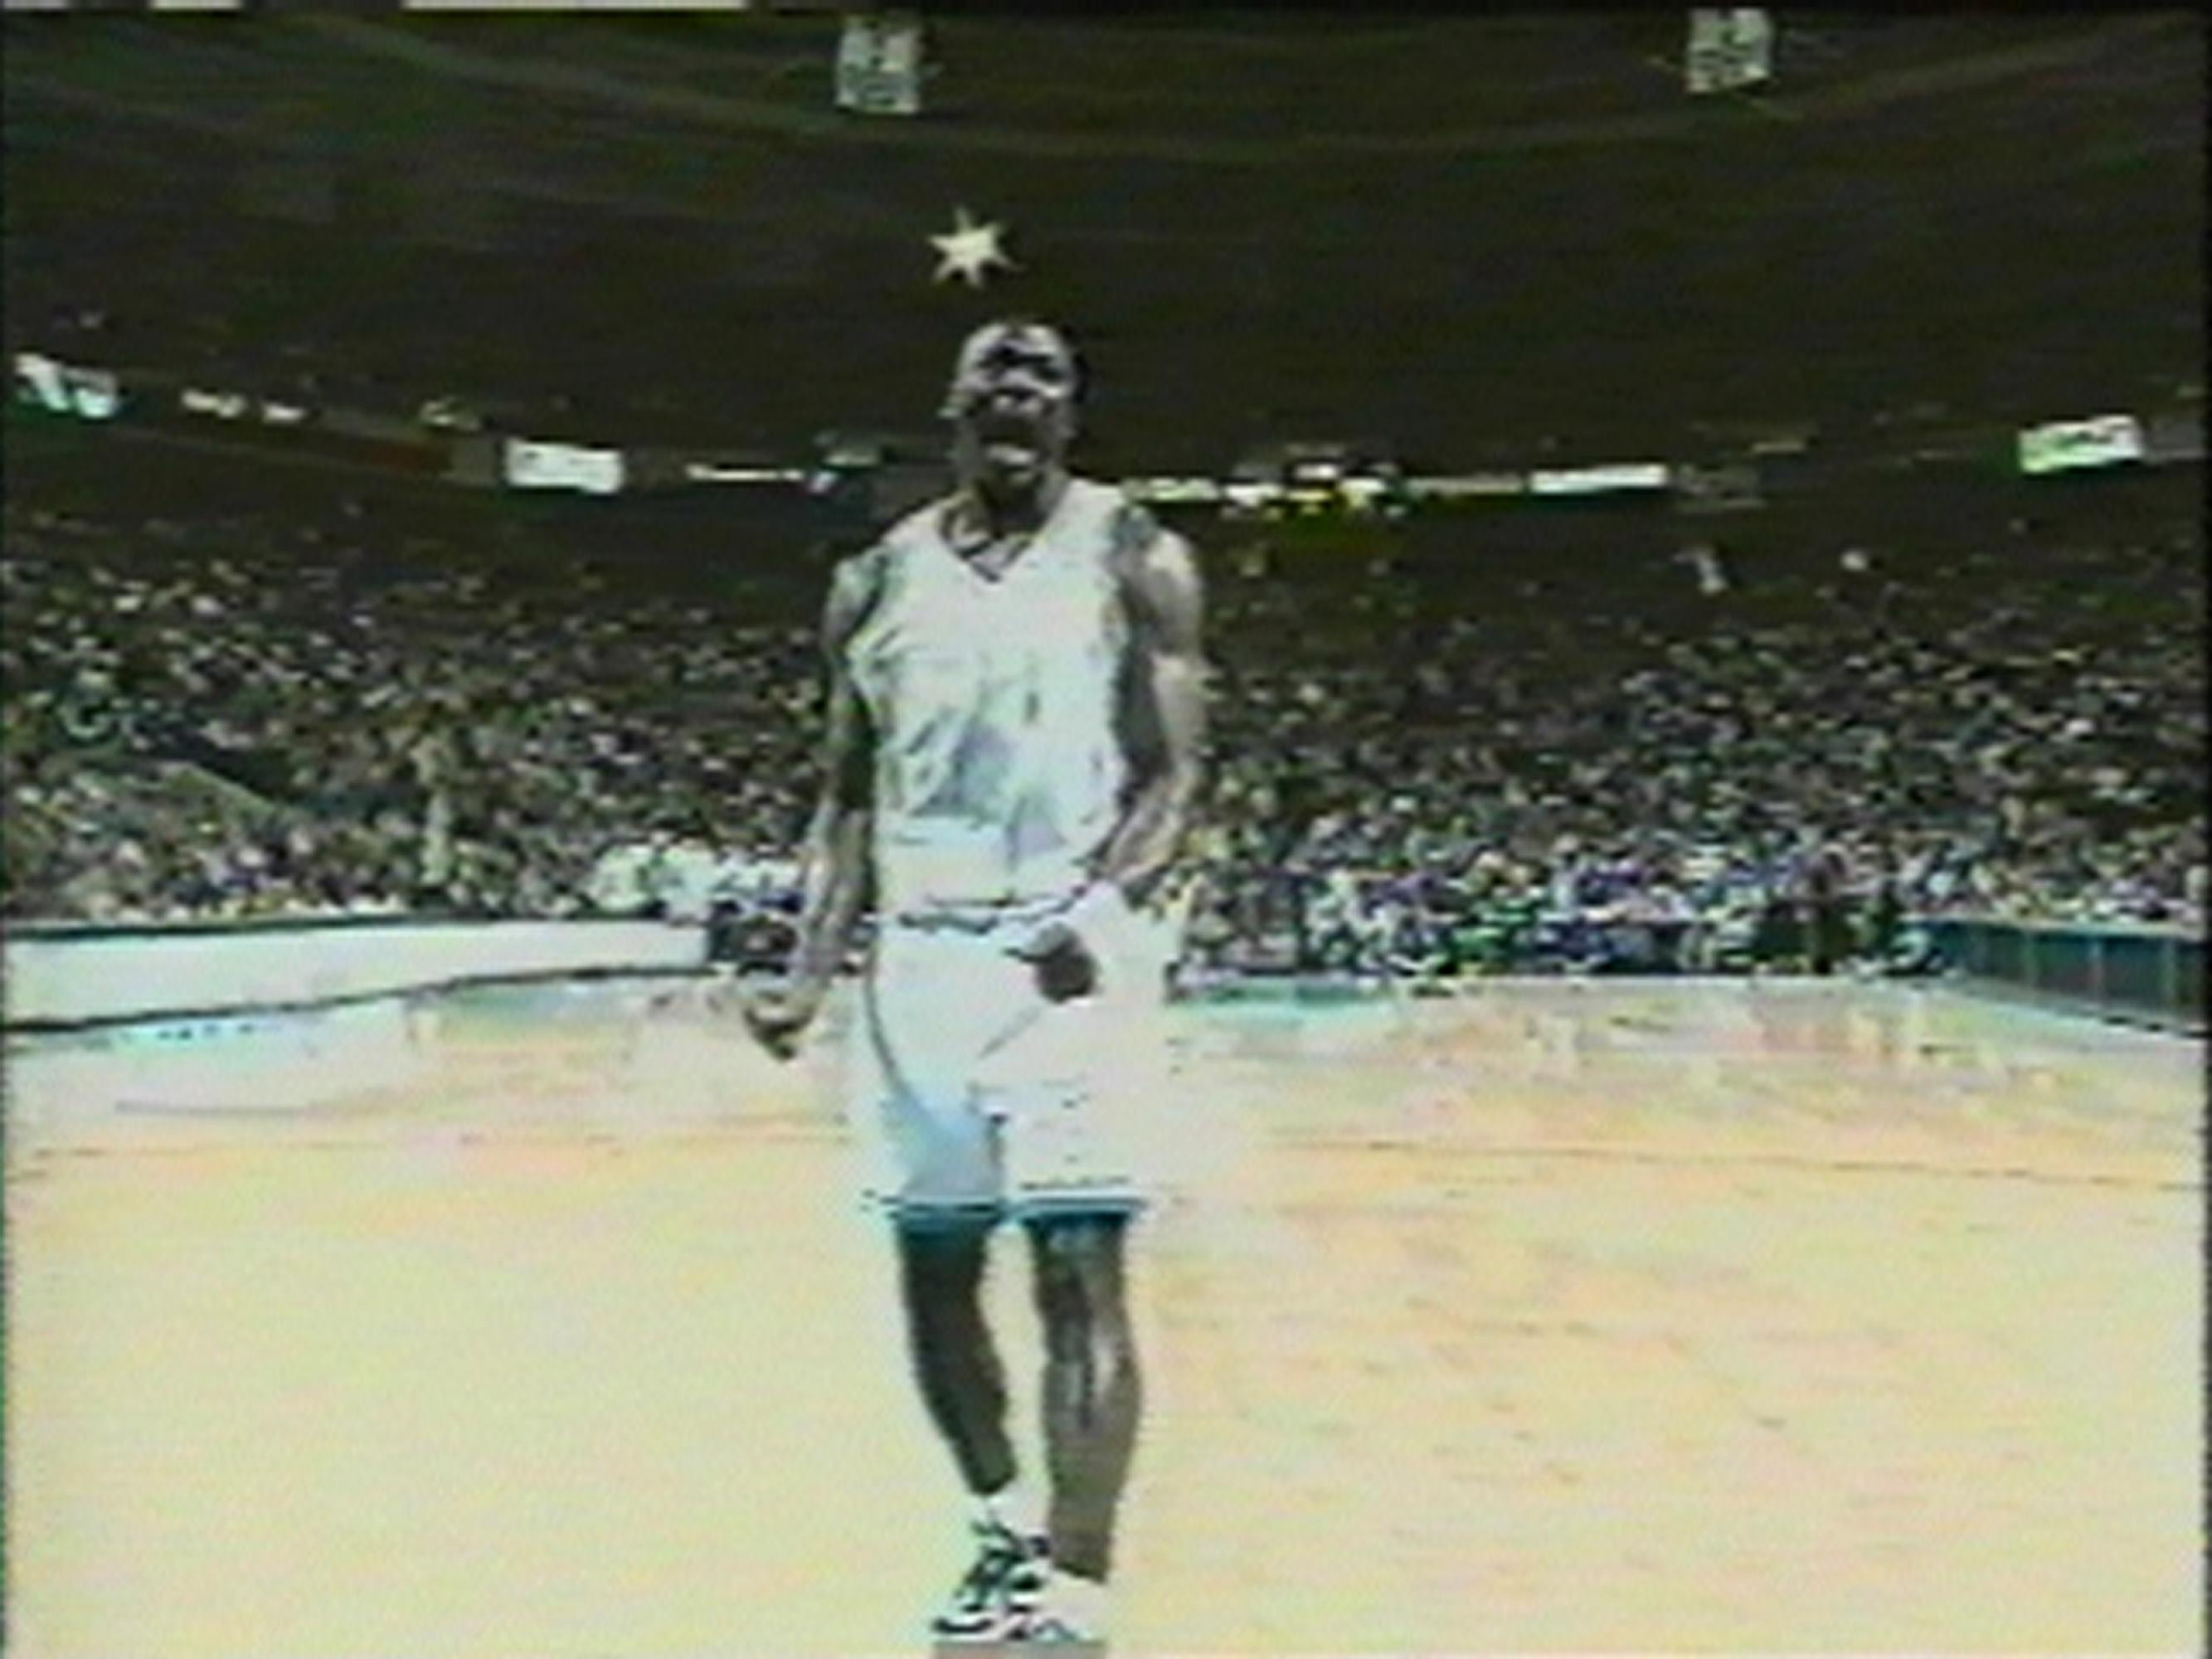 A dark-skinned basketball player wearing a light-blue uniform shouts in the middle of an empty basketball court.